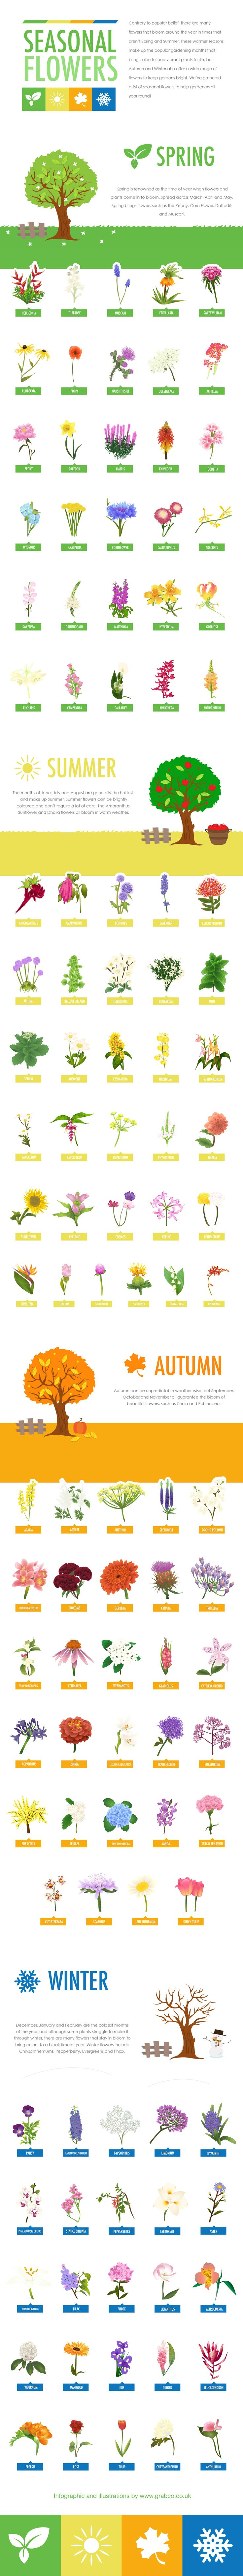 Seasonal Flowers [Hand Drawn Infographic] | ecogreenlove